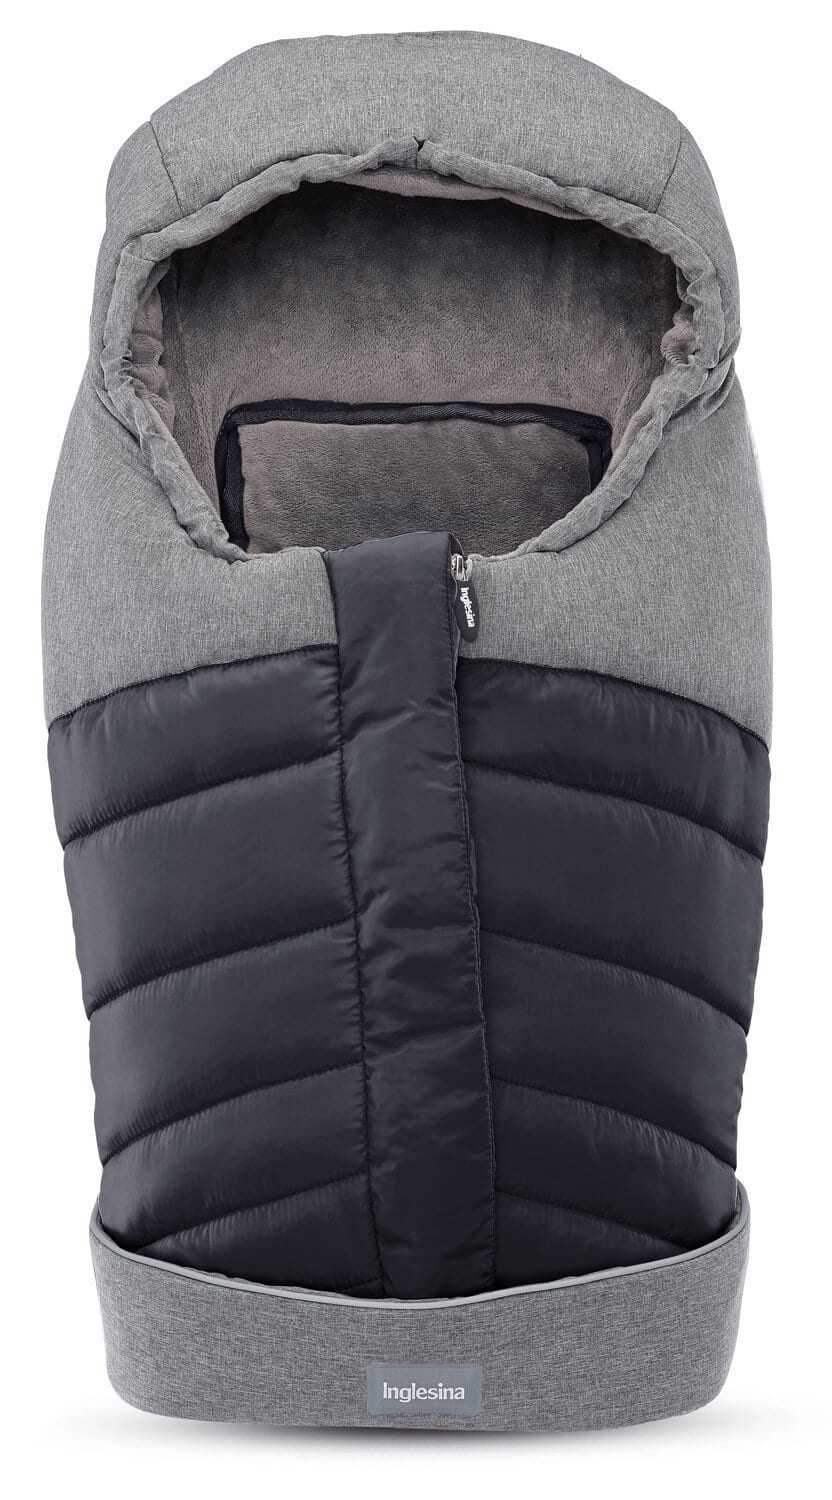 Inglesina newborn winter muff for pram & car seat - onyx black